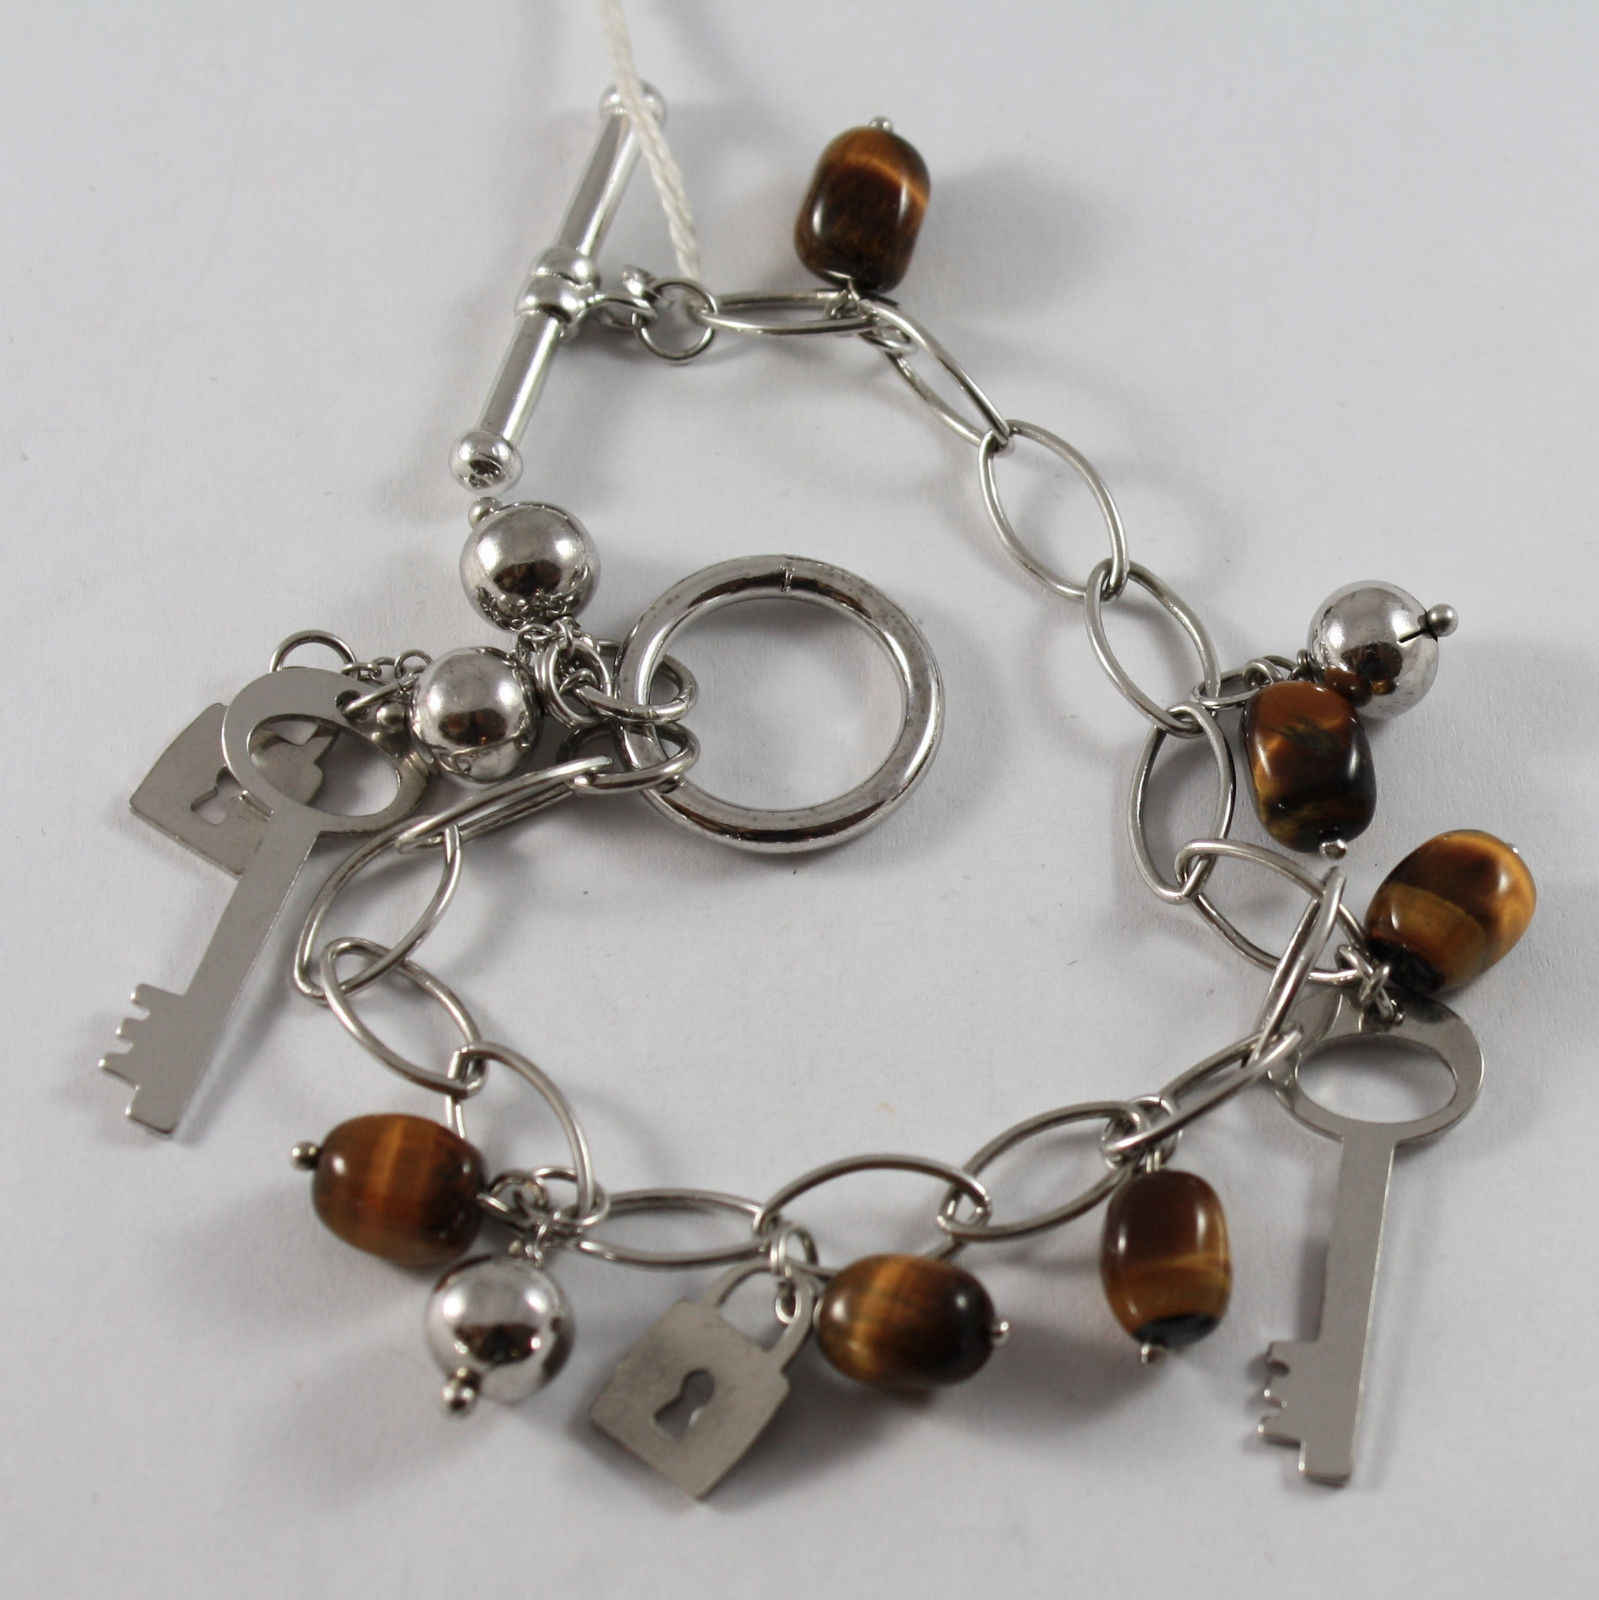 .925 RHODIUM SILVER BRACELET WITH TIGER'S EYE AND CHARMS OF KEYS AND LOCKS